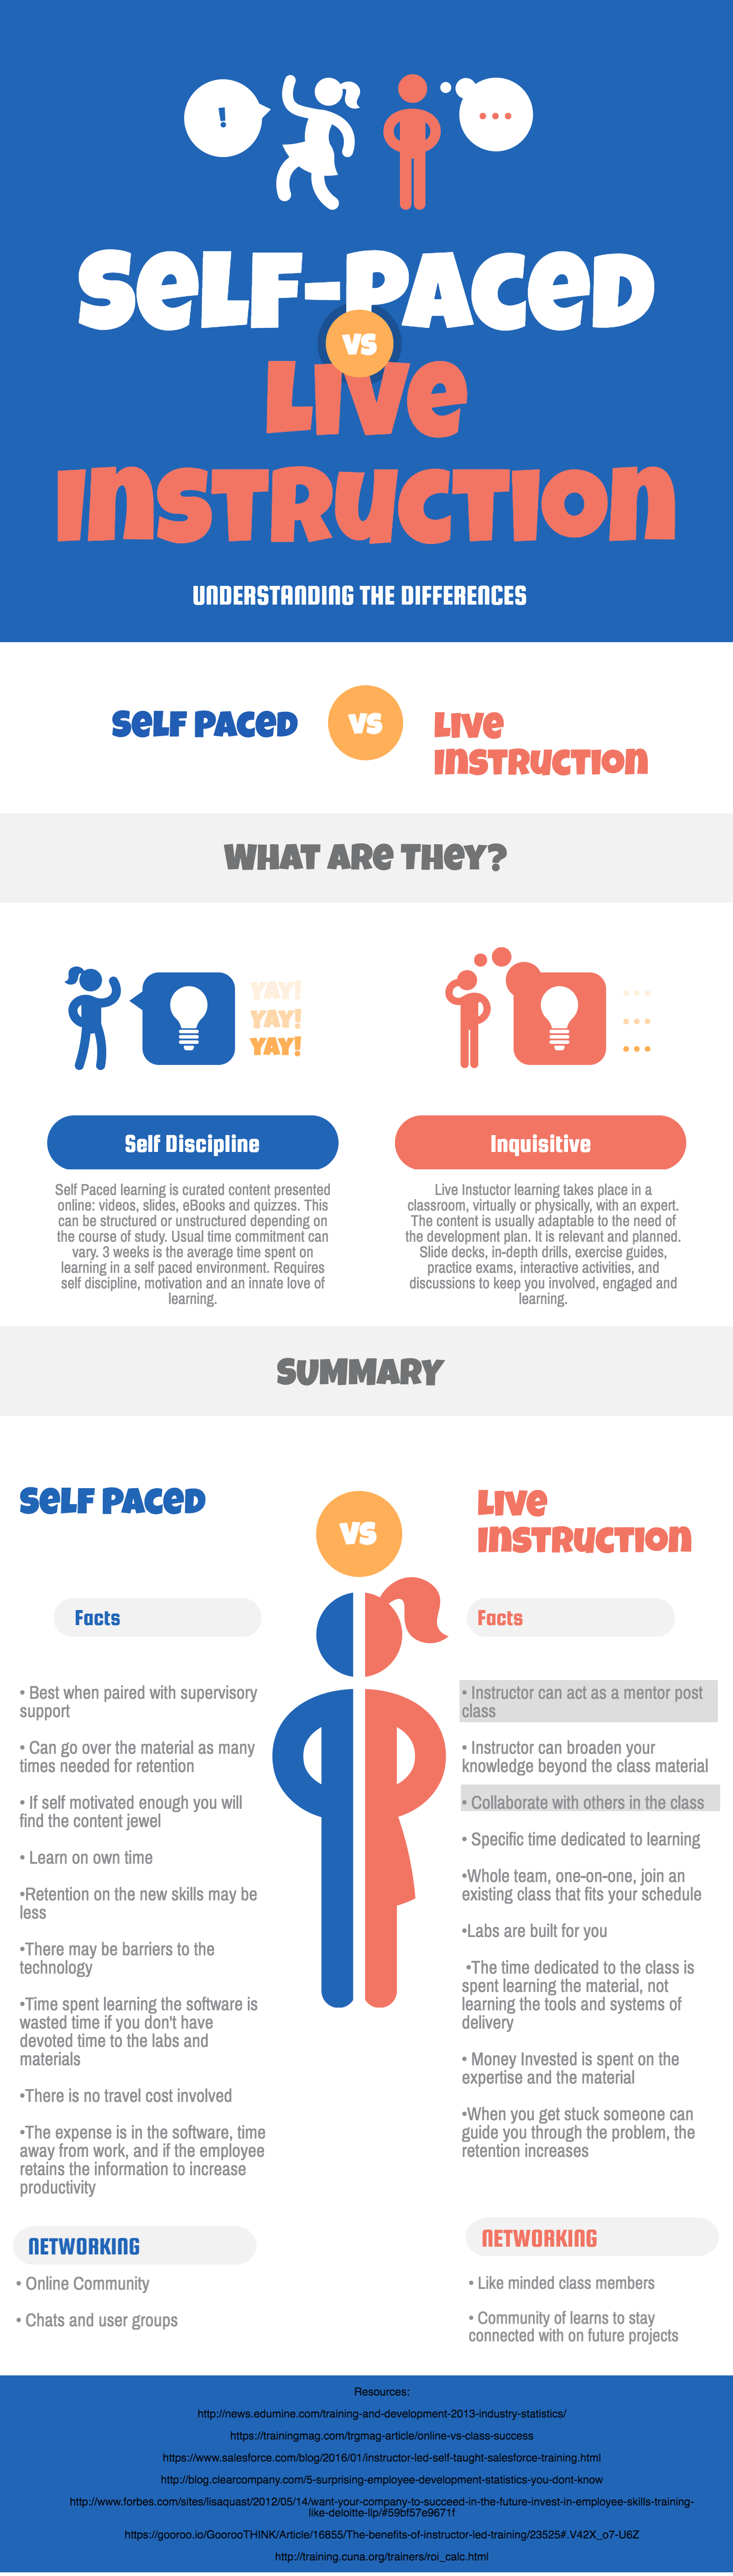 Self Paced Learning Versus Live Instruction